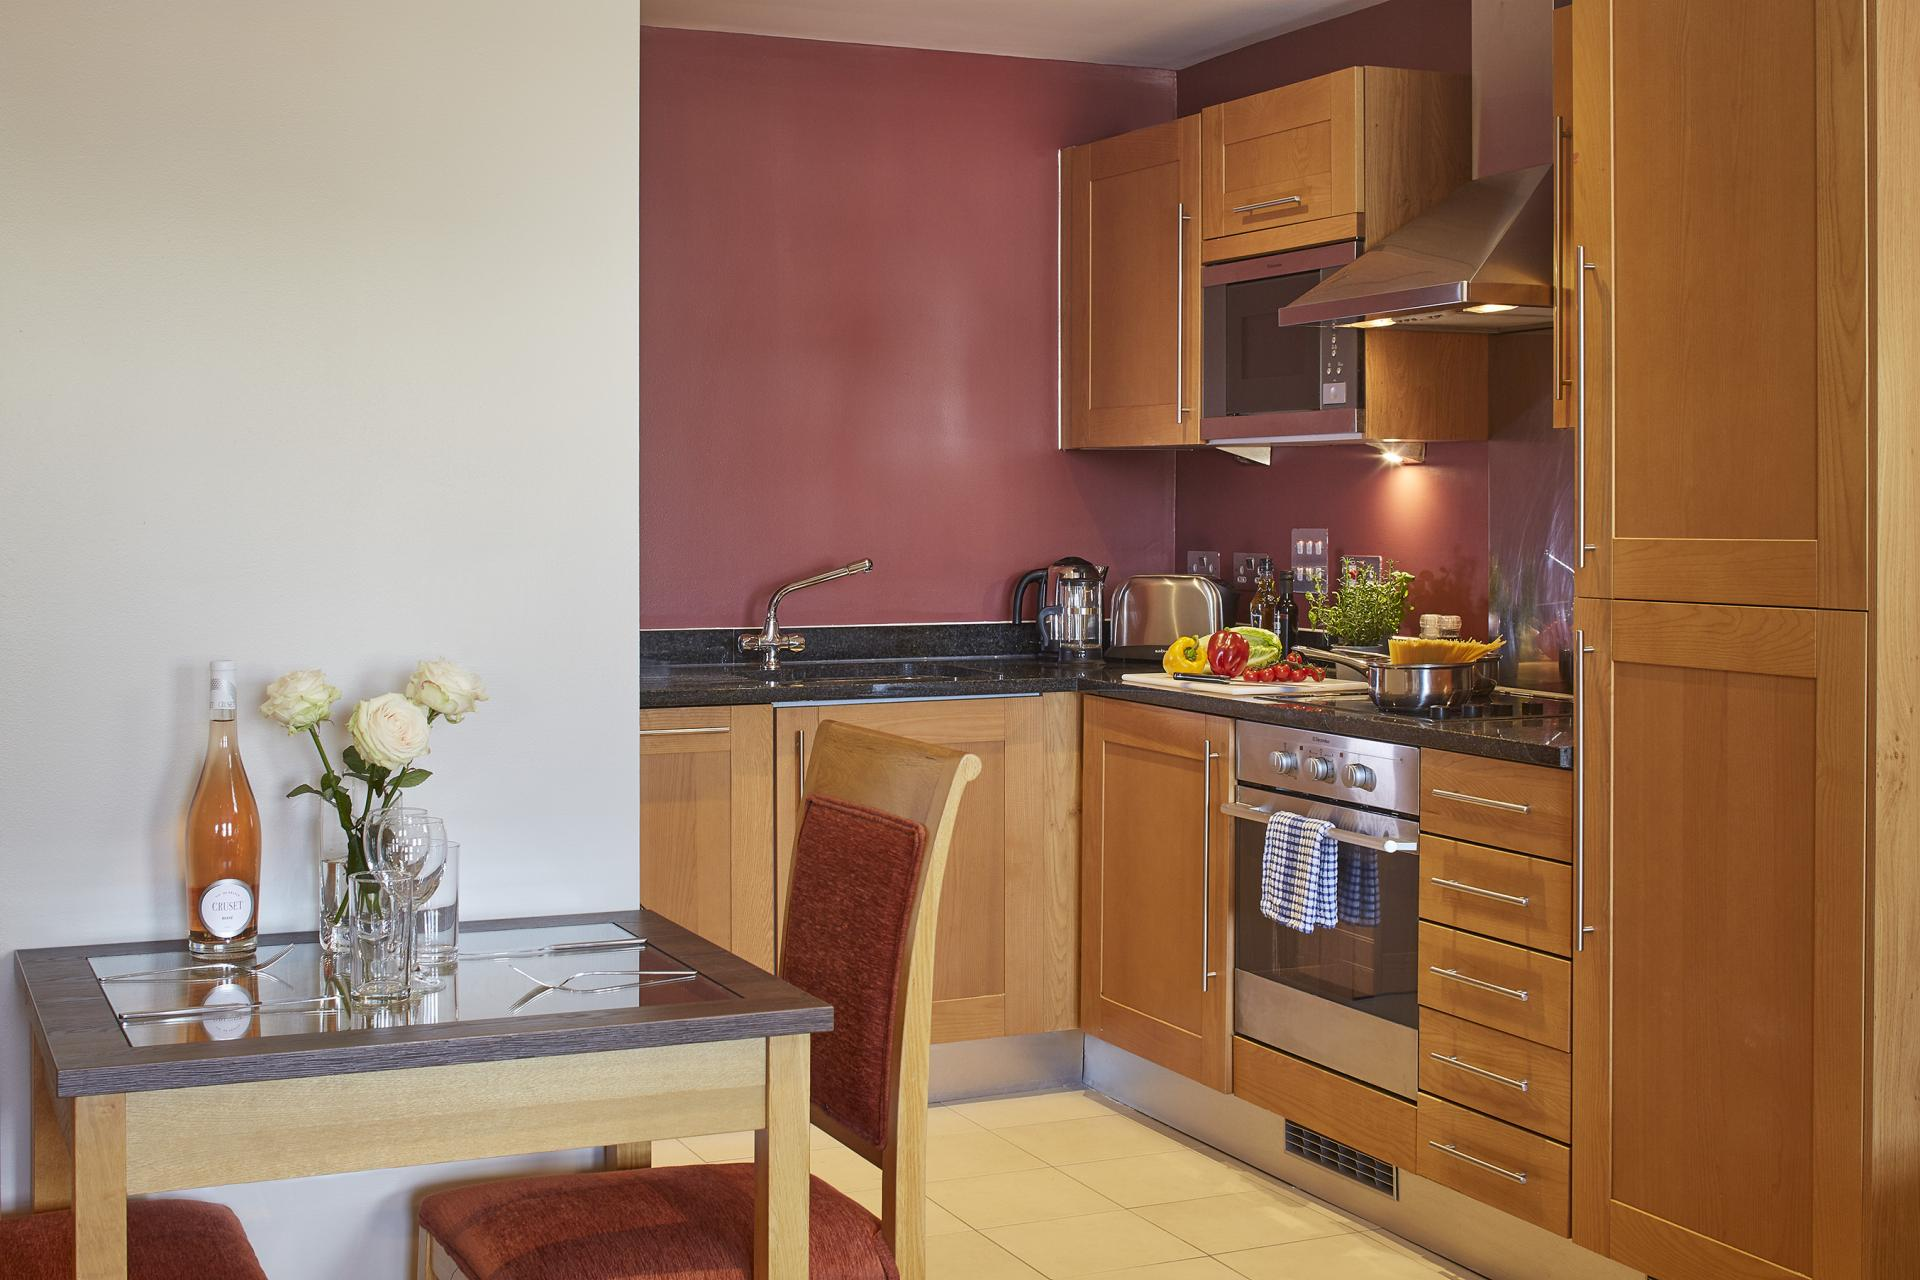 Kitchen at Limehouse Apartments, Limehouse, London